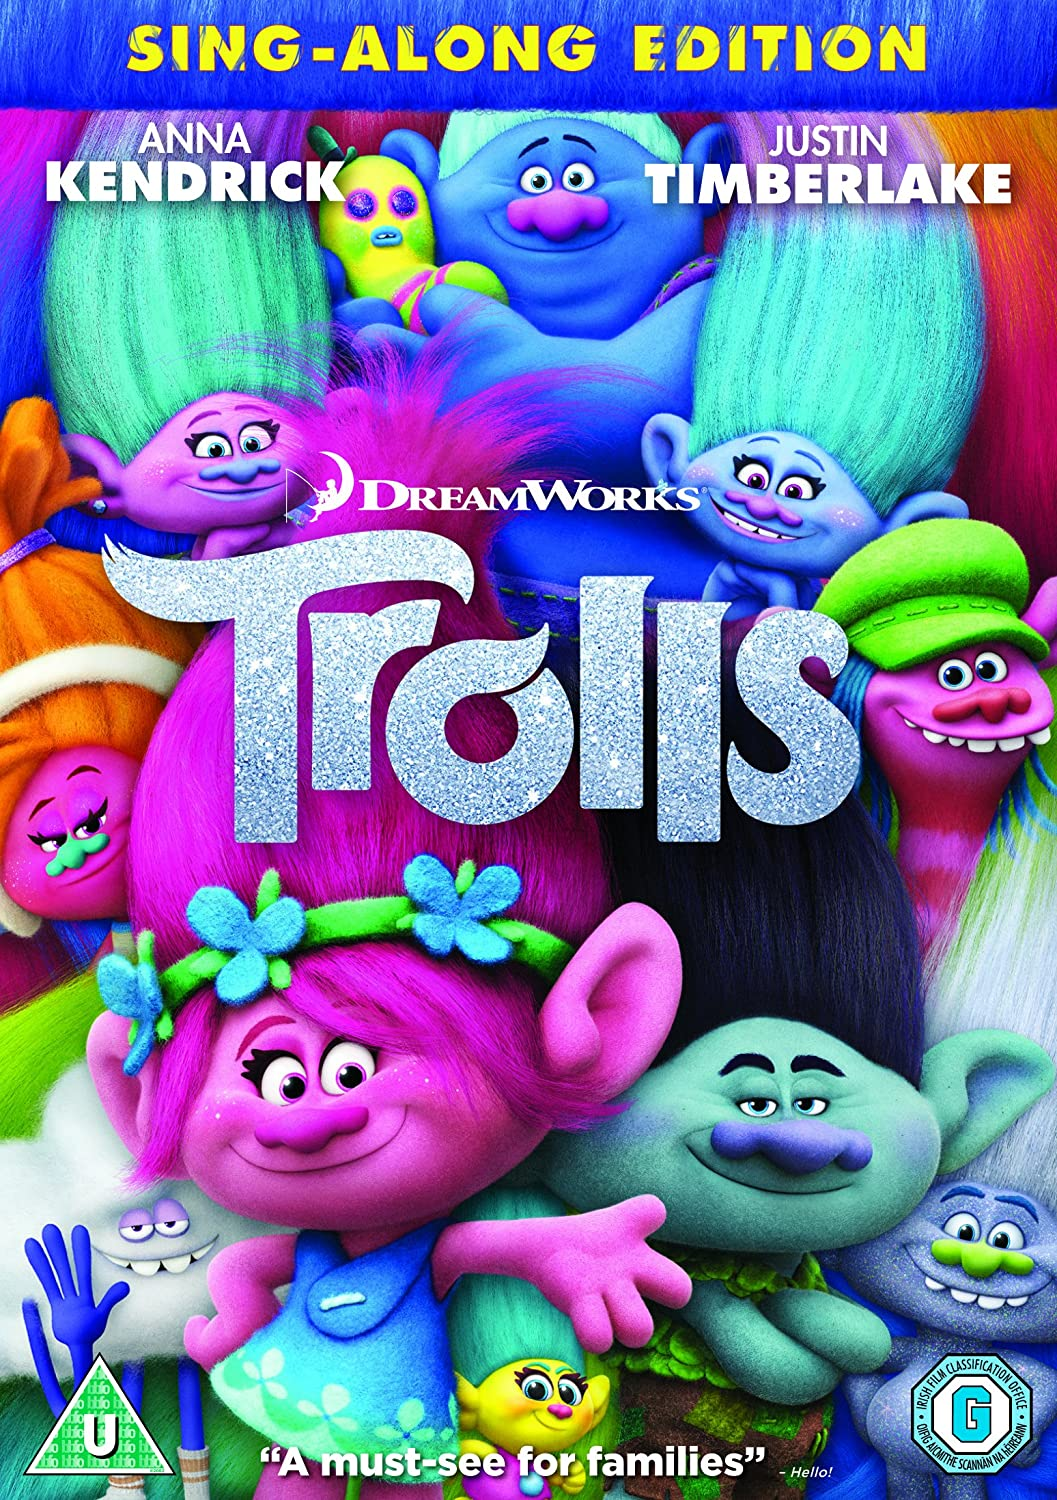 Trolls [DVD]: Amazon.co.uk: Anna Kendrick, Zooey Deschanel, Justin  Timberlake, Mike Mitchell, Walt Dohrn, Gina Shay: DVD & Blu-ray